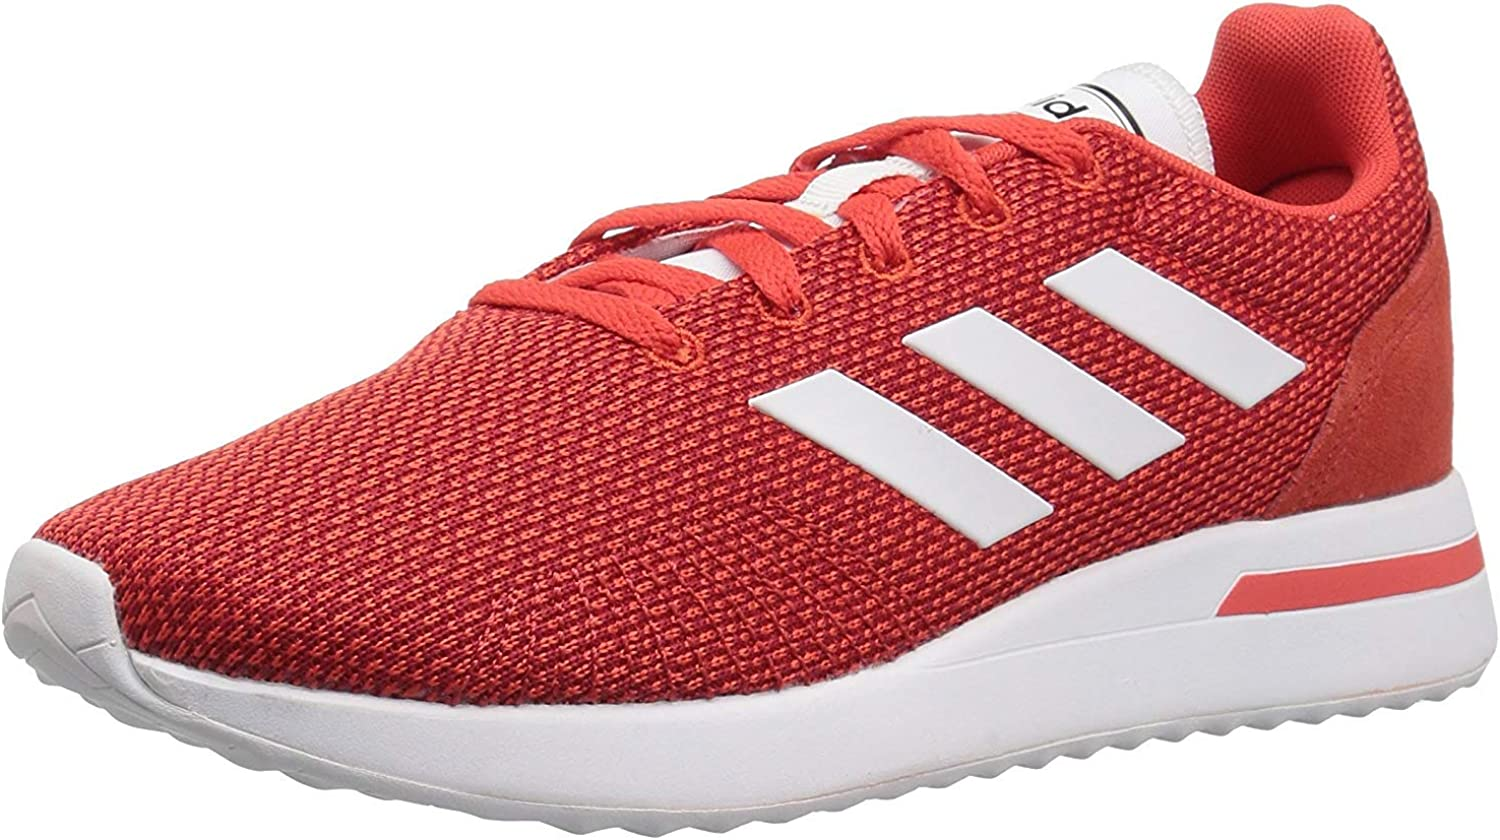 Diplomacia En detalle Adversario  Amazon.com | adidas Men's Run70s Running Shoe | Road Running